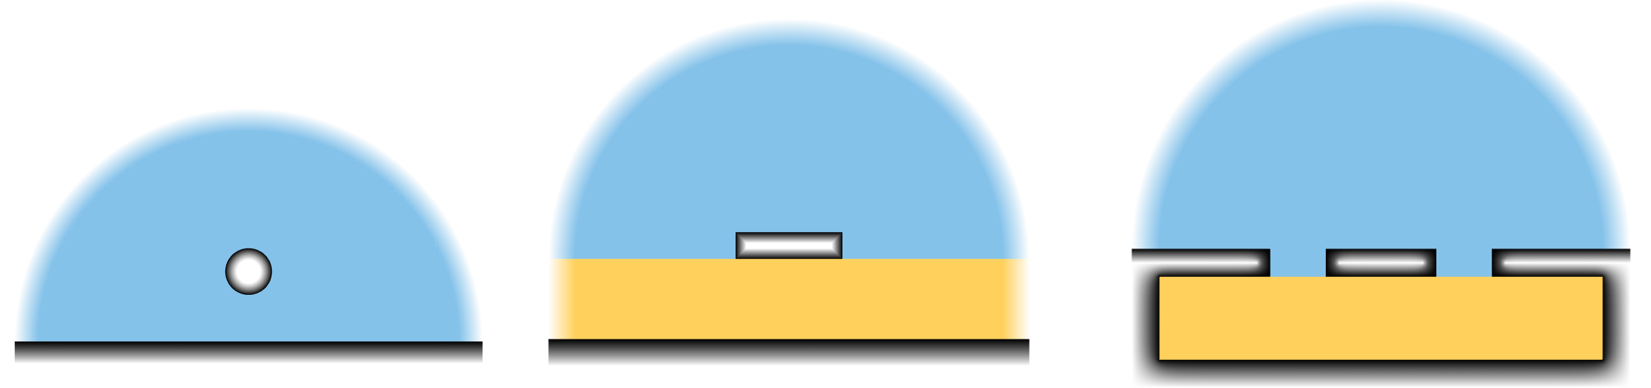 Three side-by-side illustrations showing different variations of a line over ground plane.